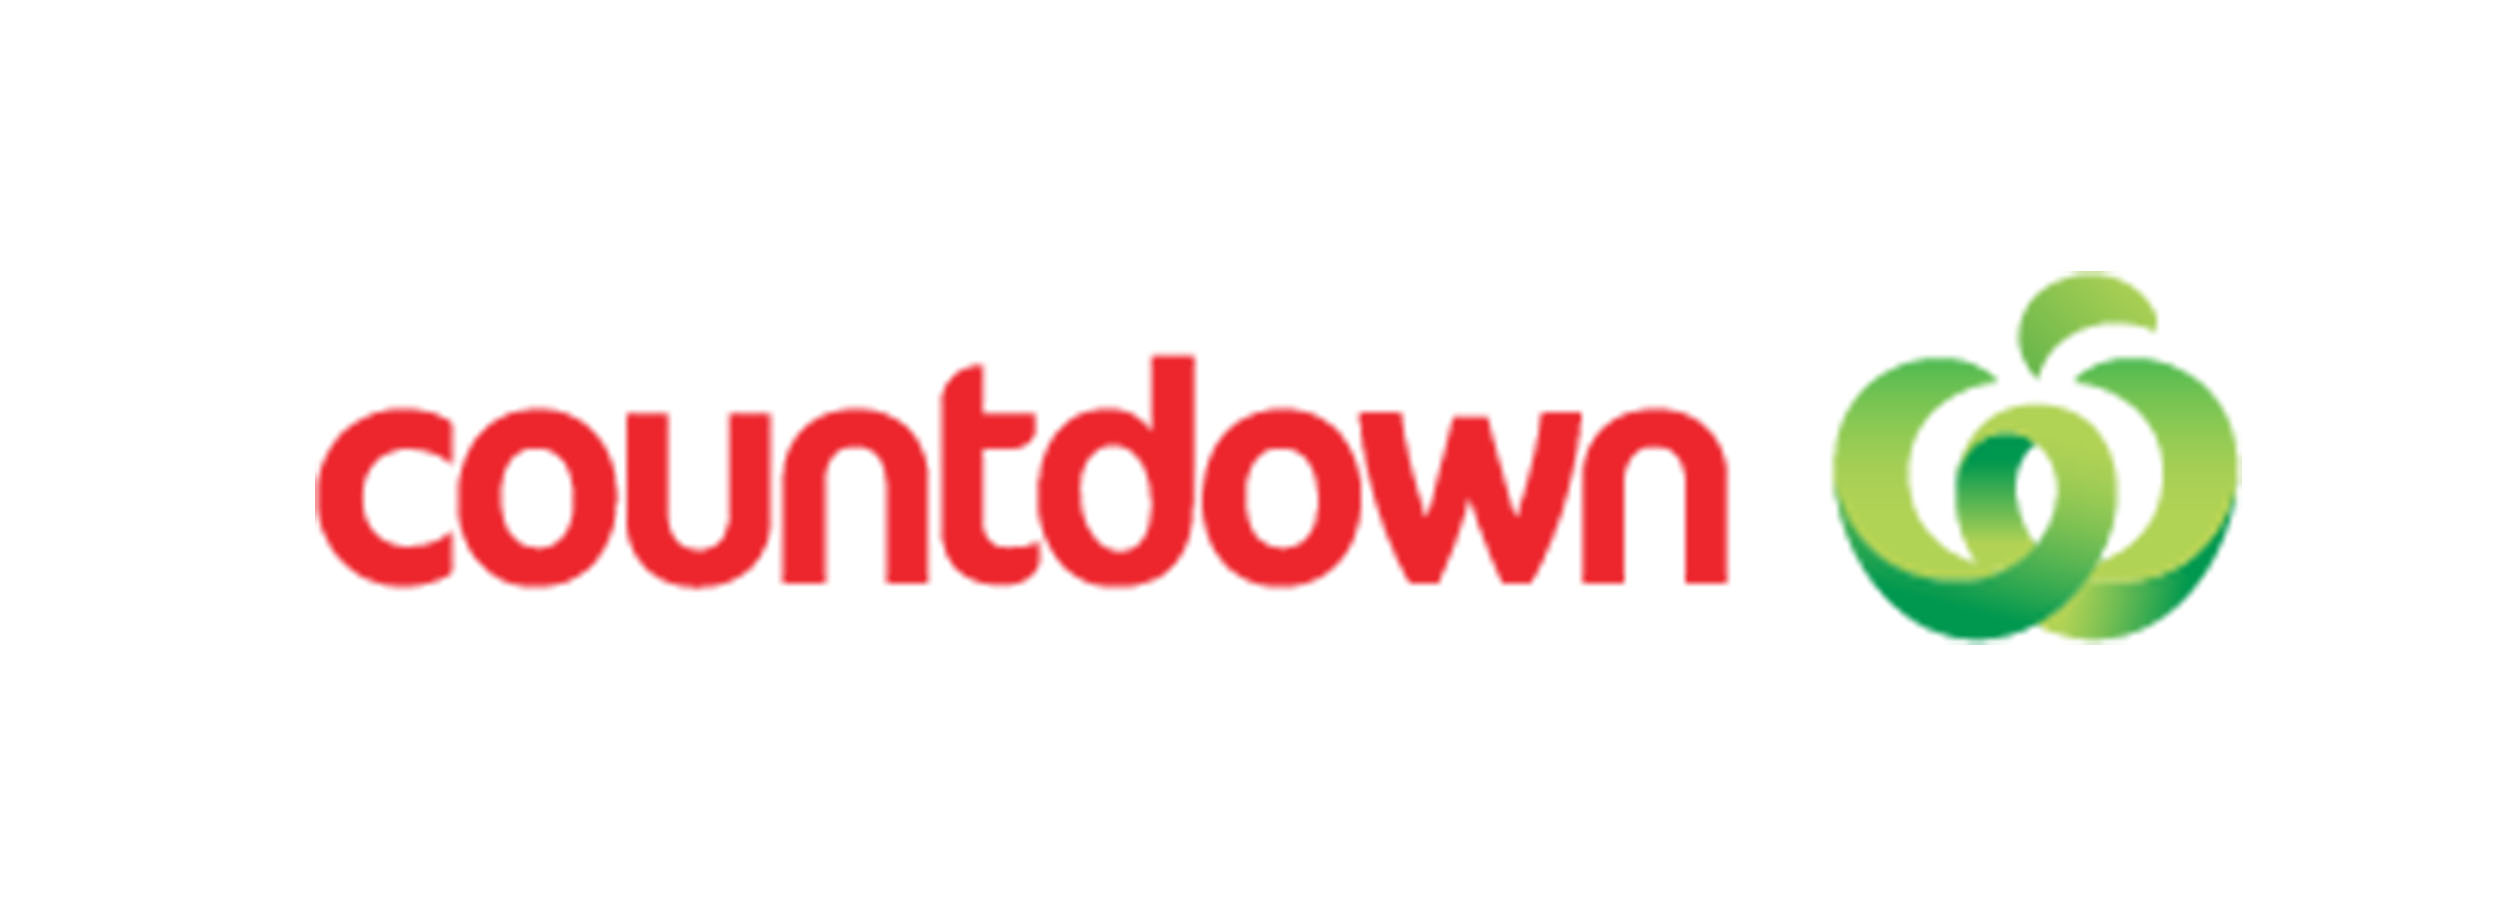 Terms Of Use >> Countdown Logo | Batiste